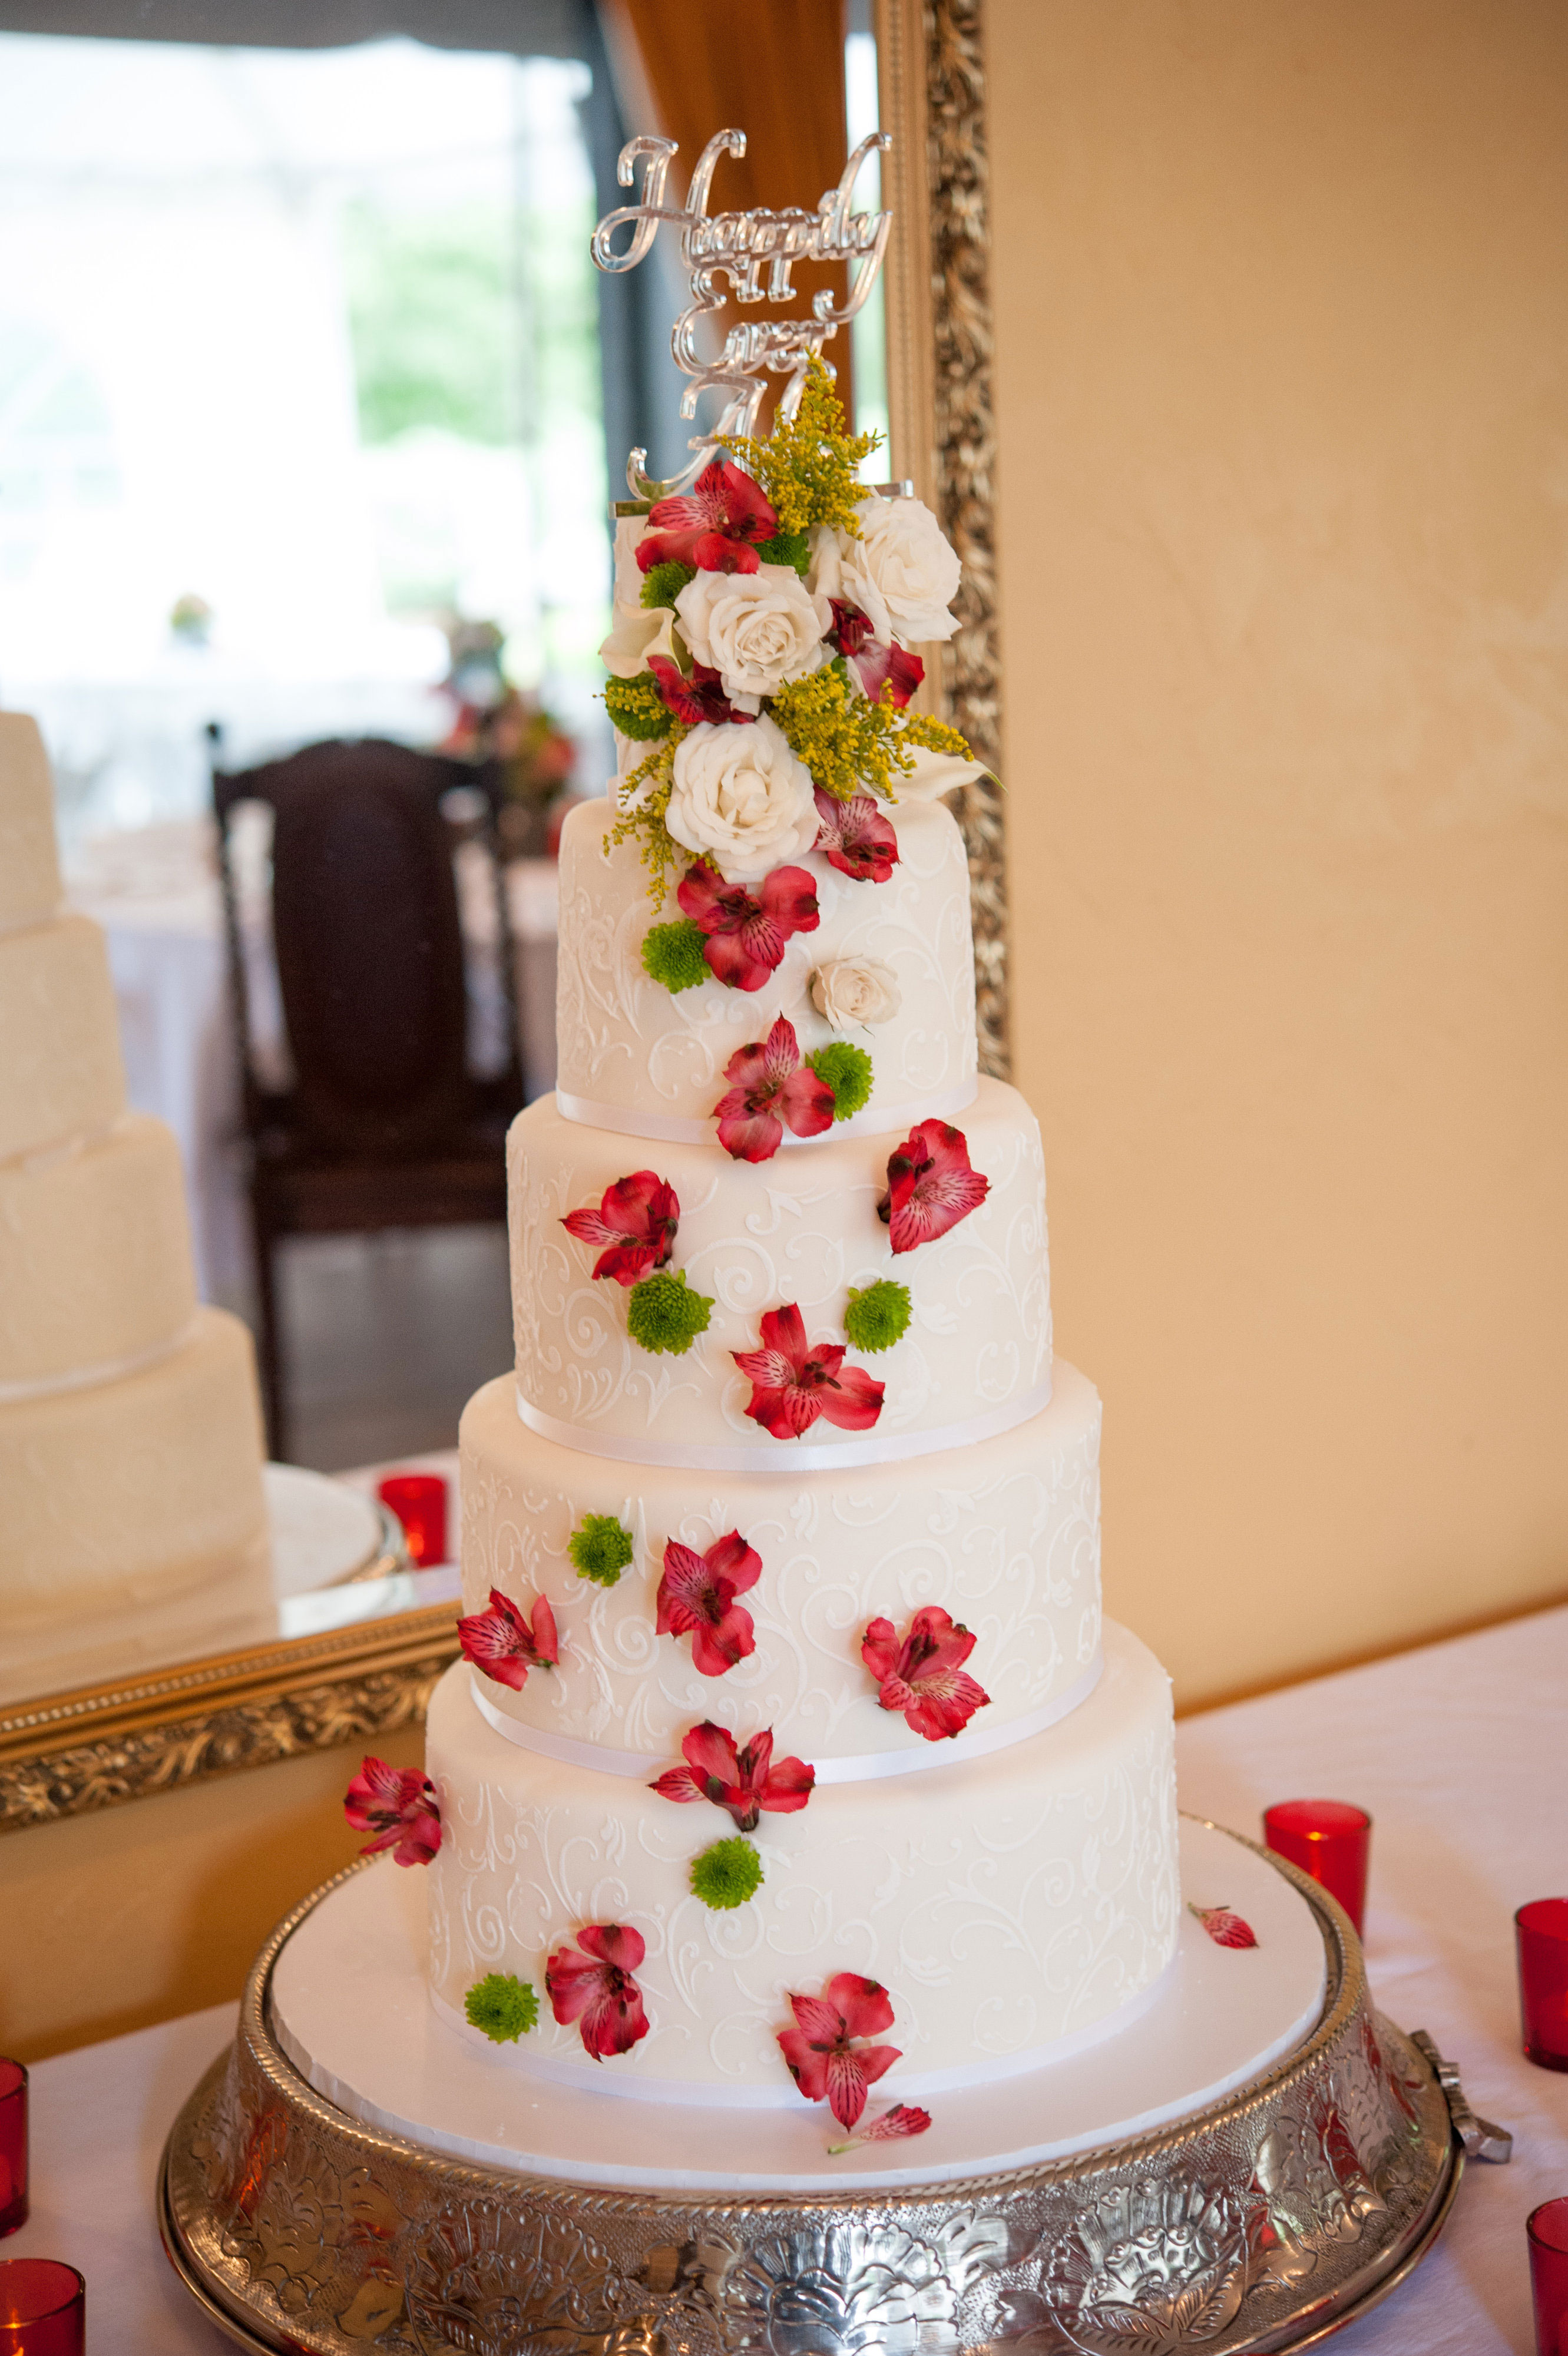 Wedding Cake Pricing Explained A Little Help With Your Wedding Planning O Just Simply